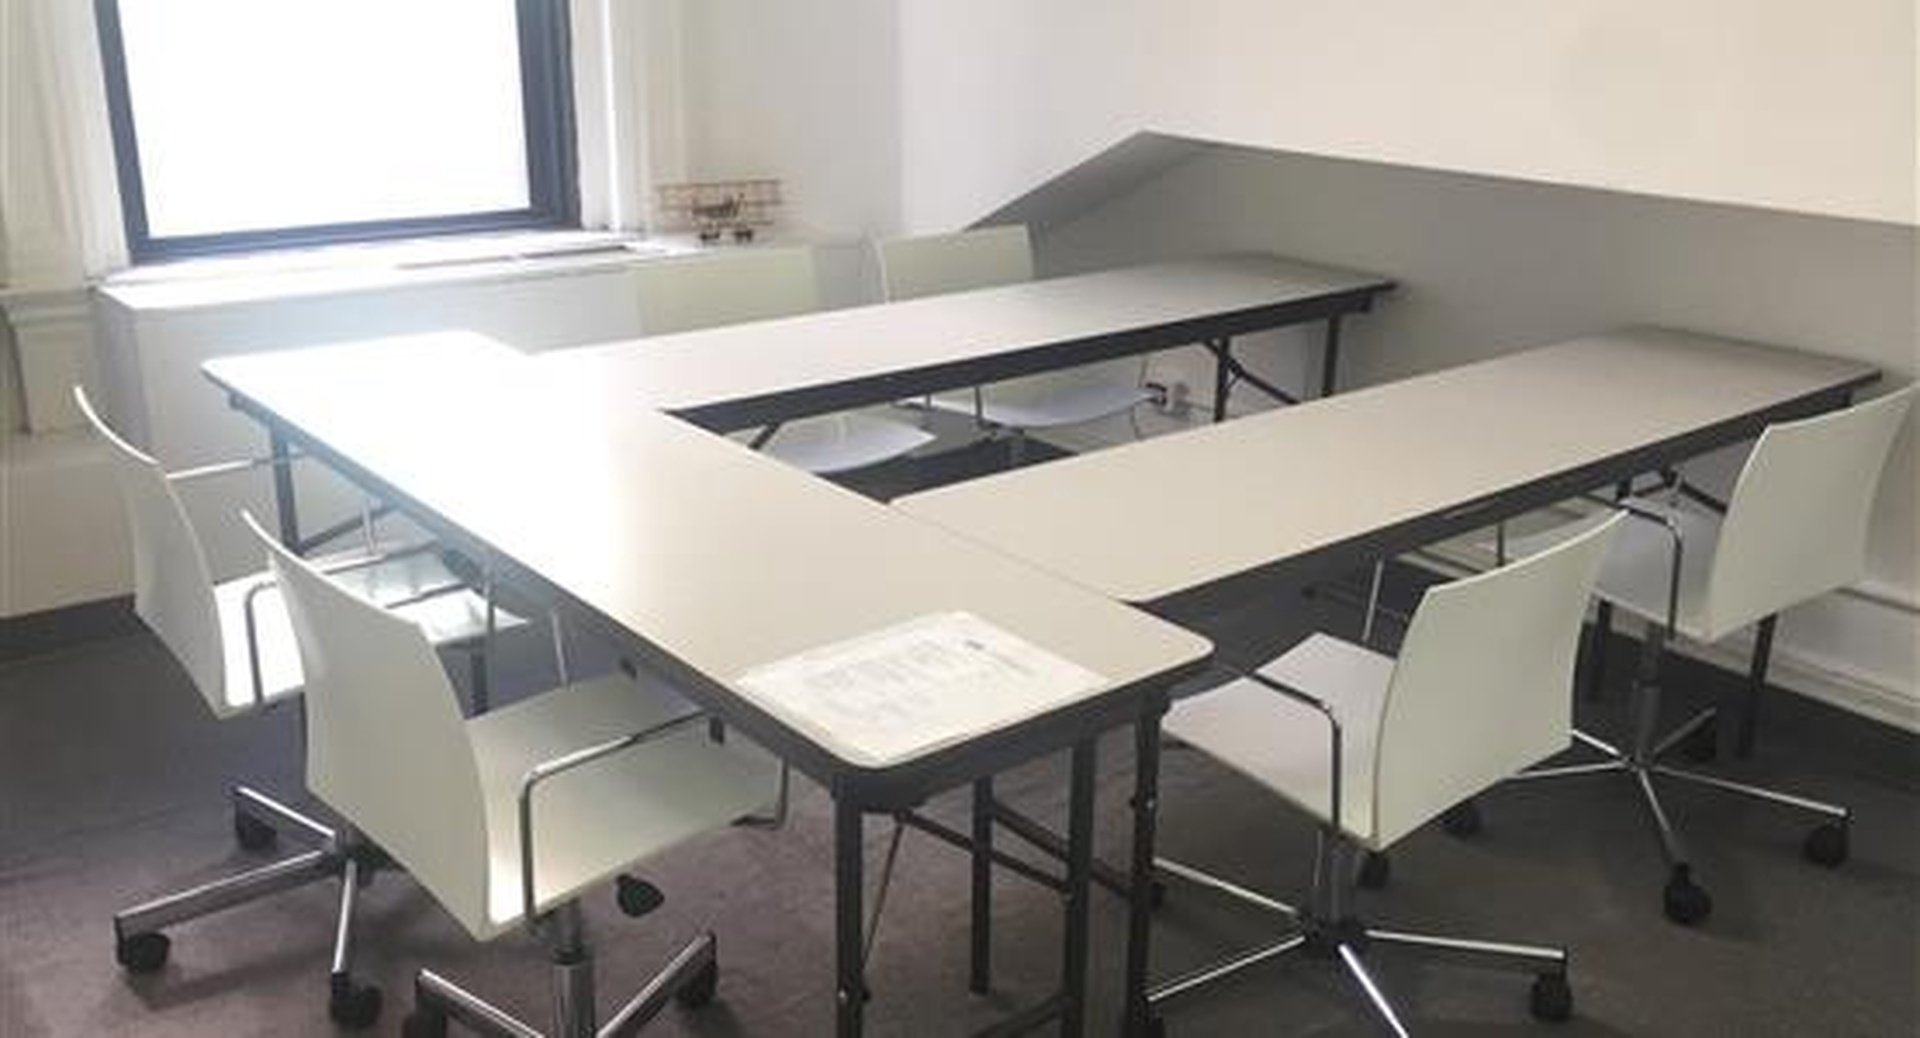 NYC conference rooms Espace de Coworking Sage Workspace - Room H image 0